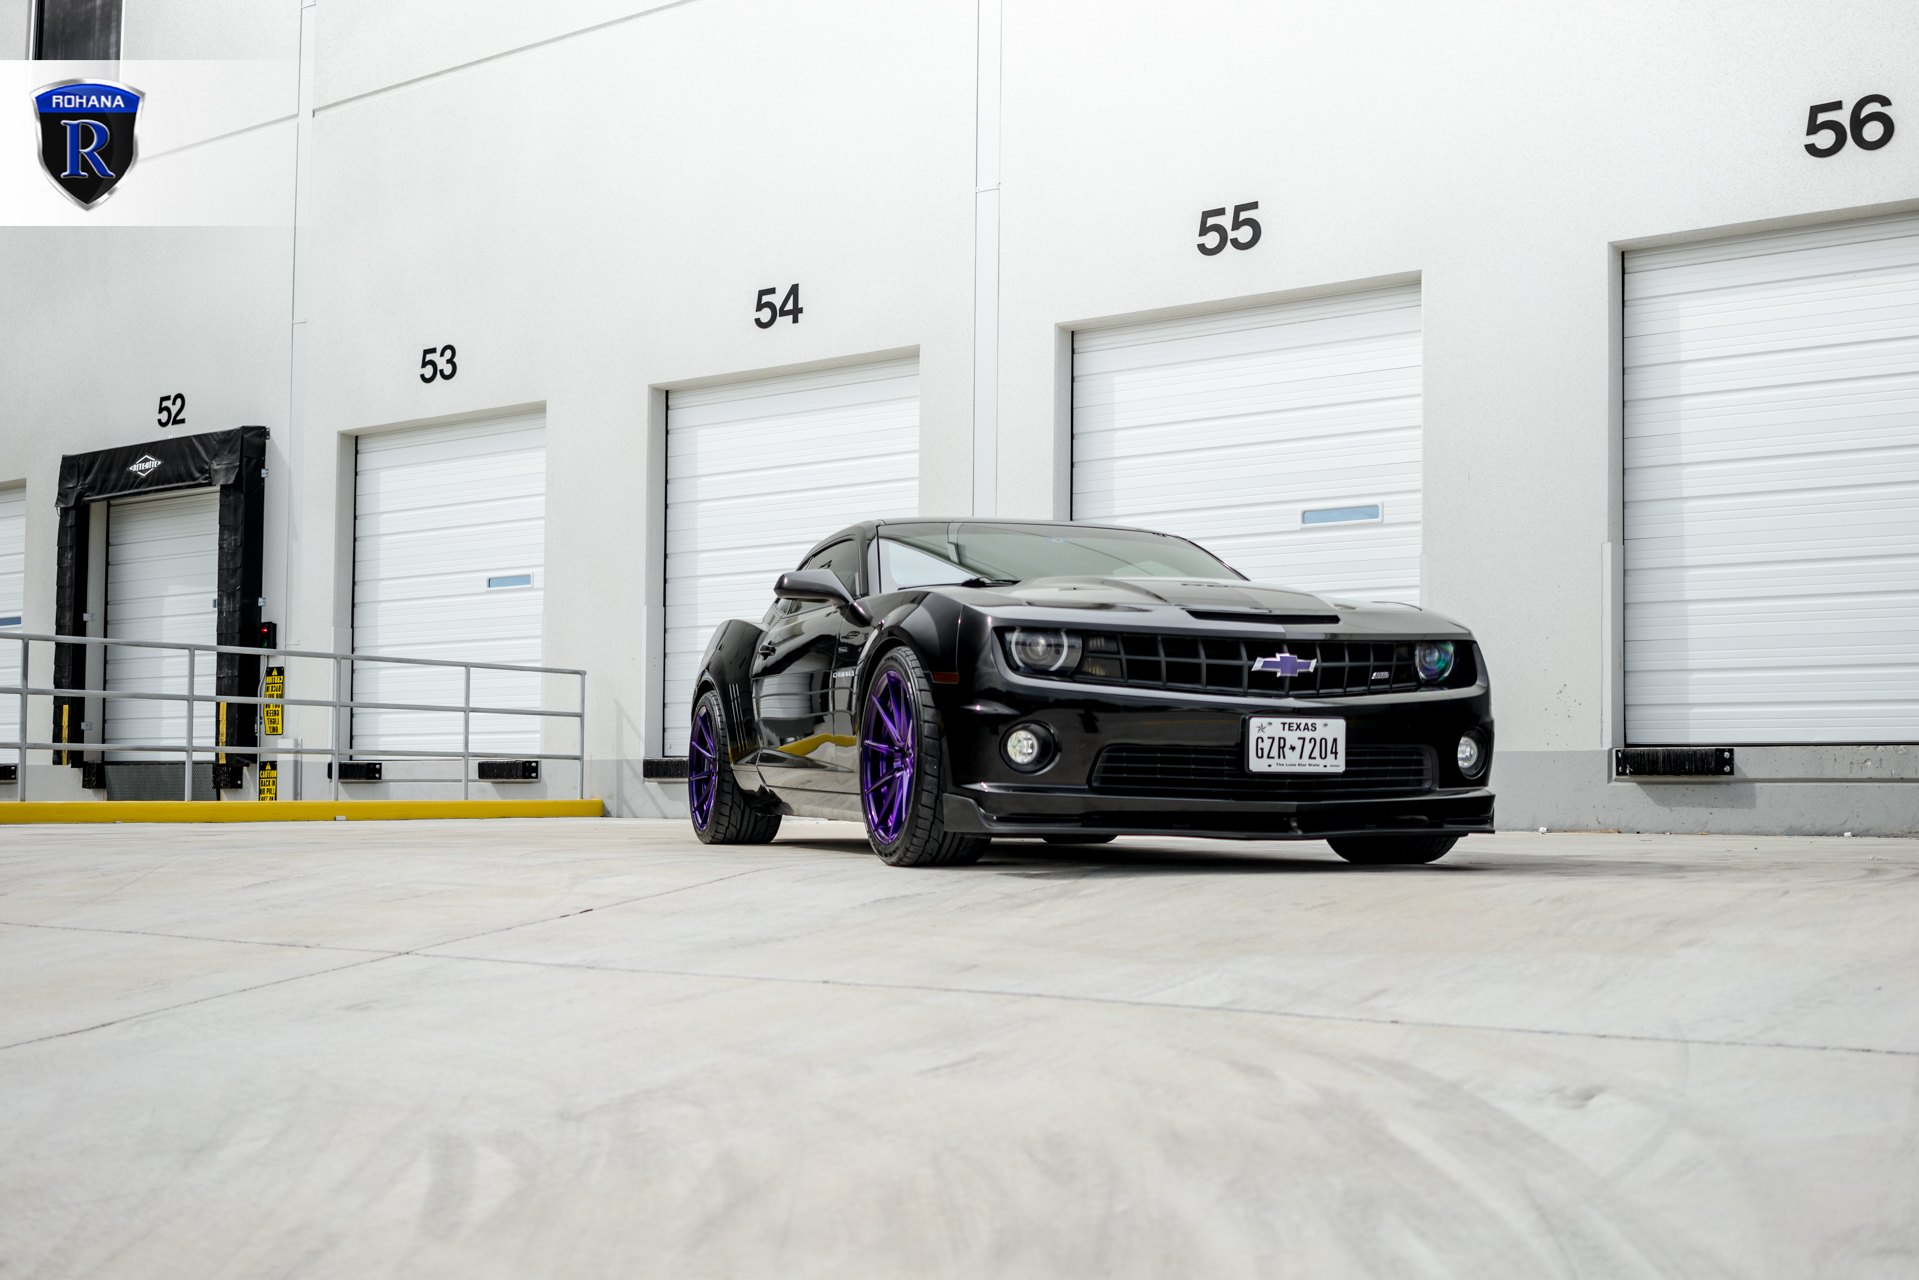 Dark Smoke Halo Headlights on Black Chevy Camaro - Photo by Rohana Wheels